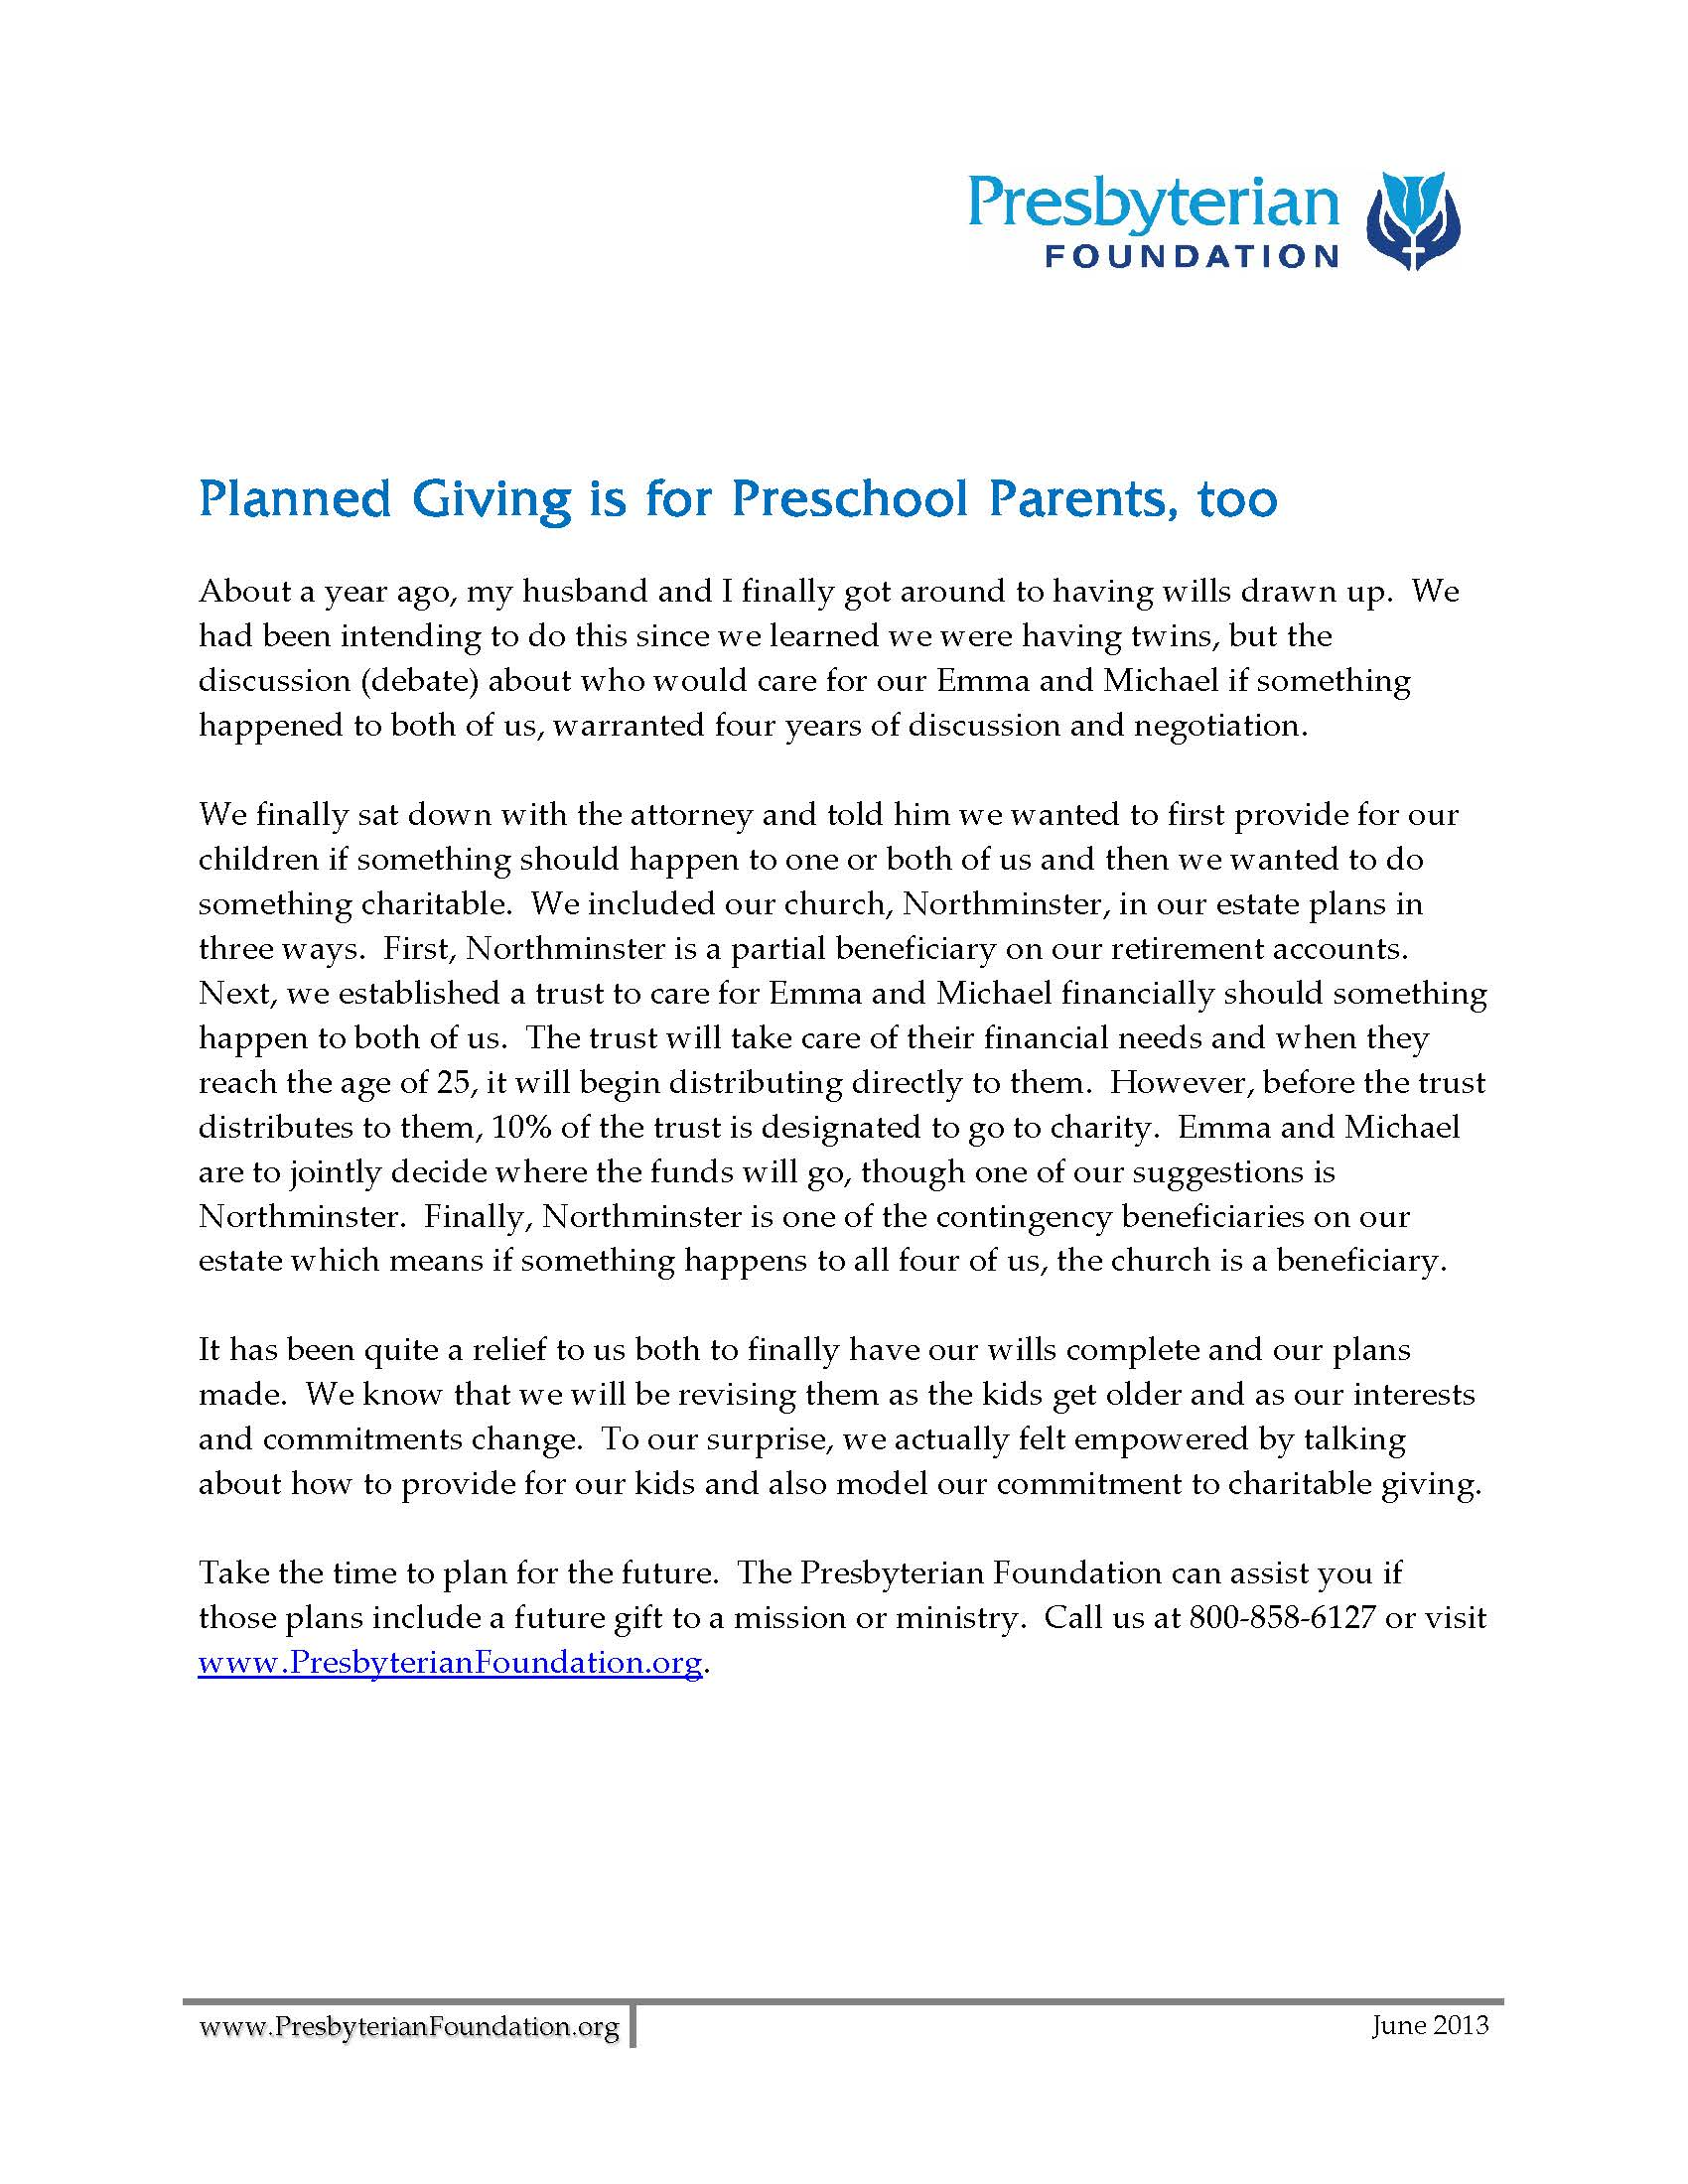 Toolbox Presbyterian Foundation - Planned giving brochures templates